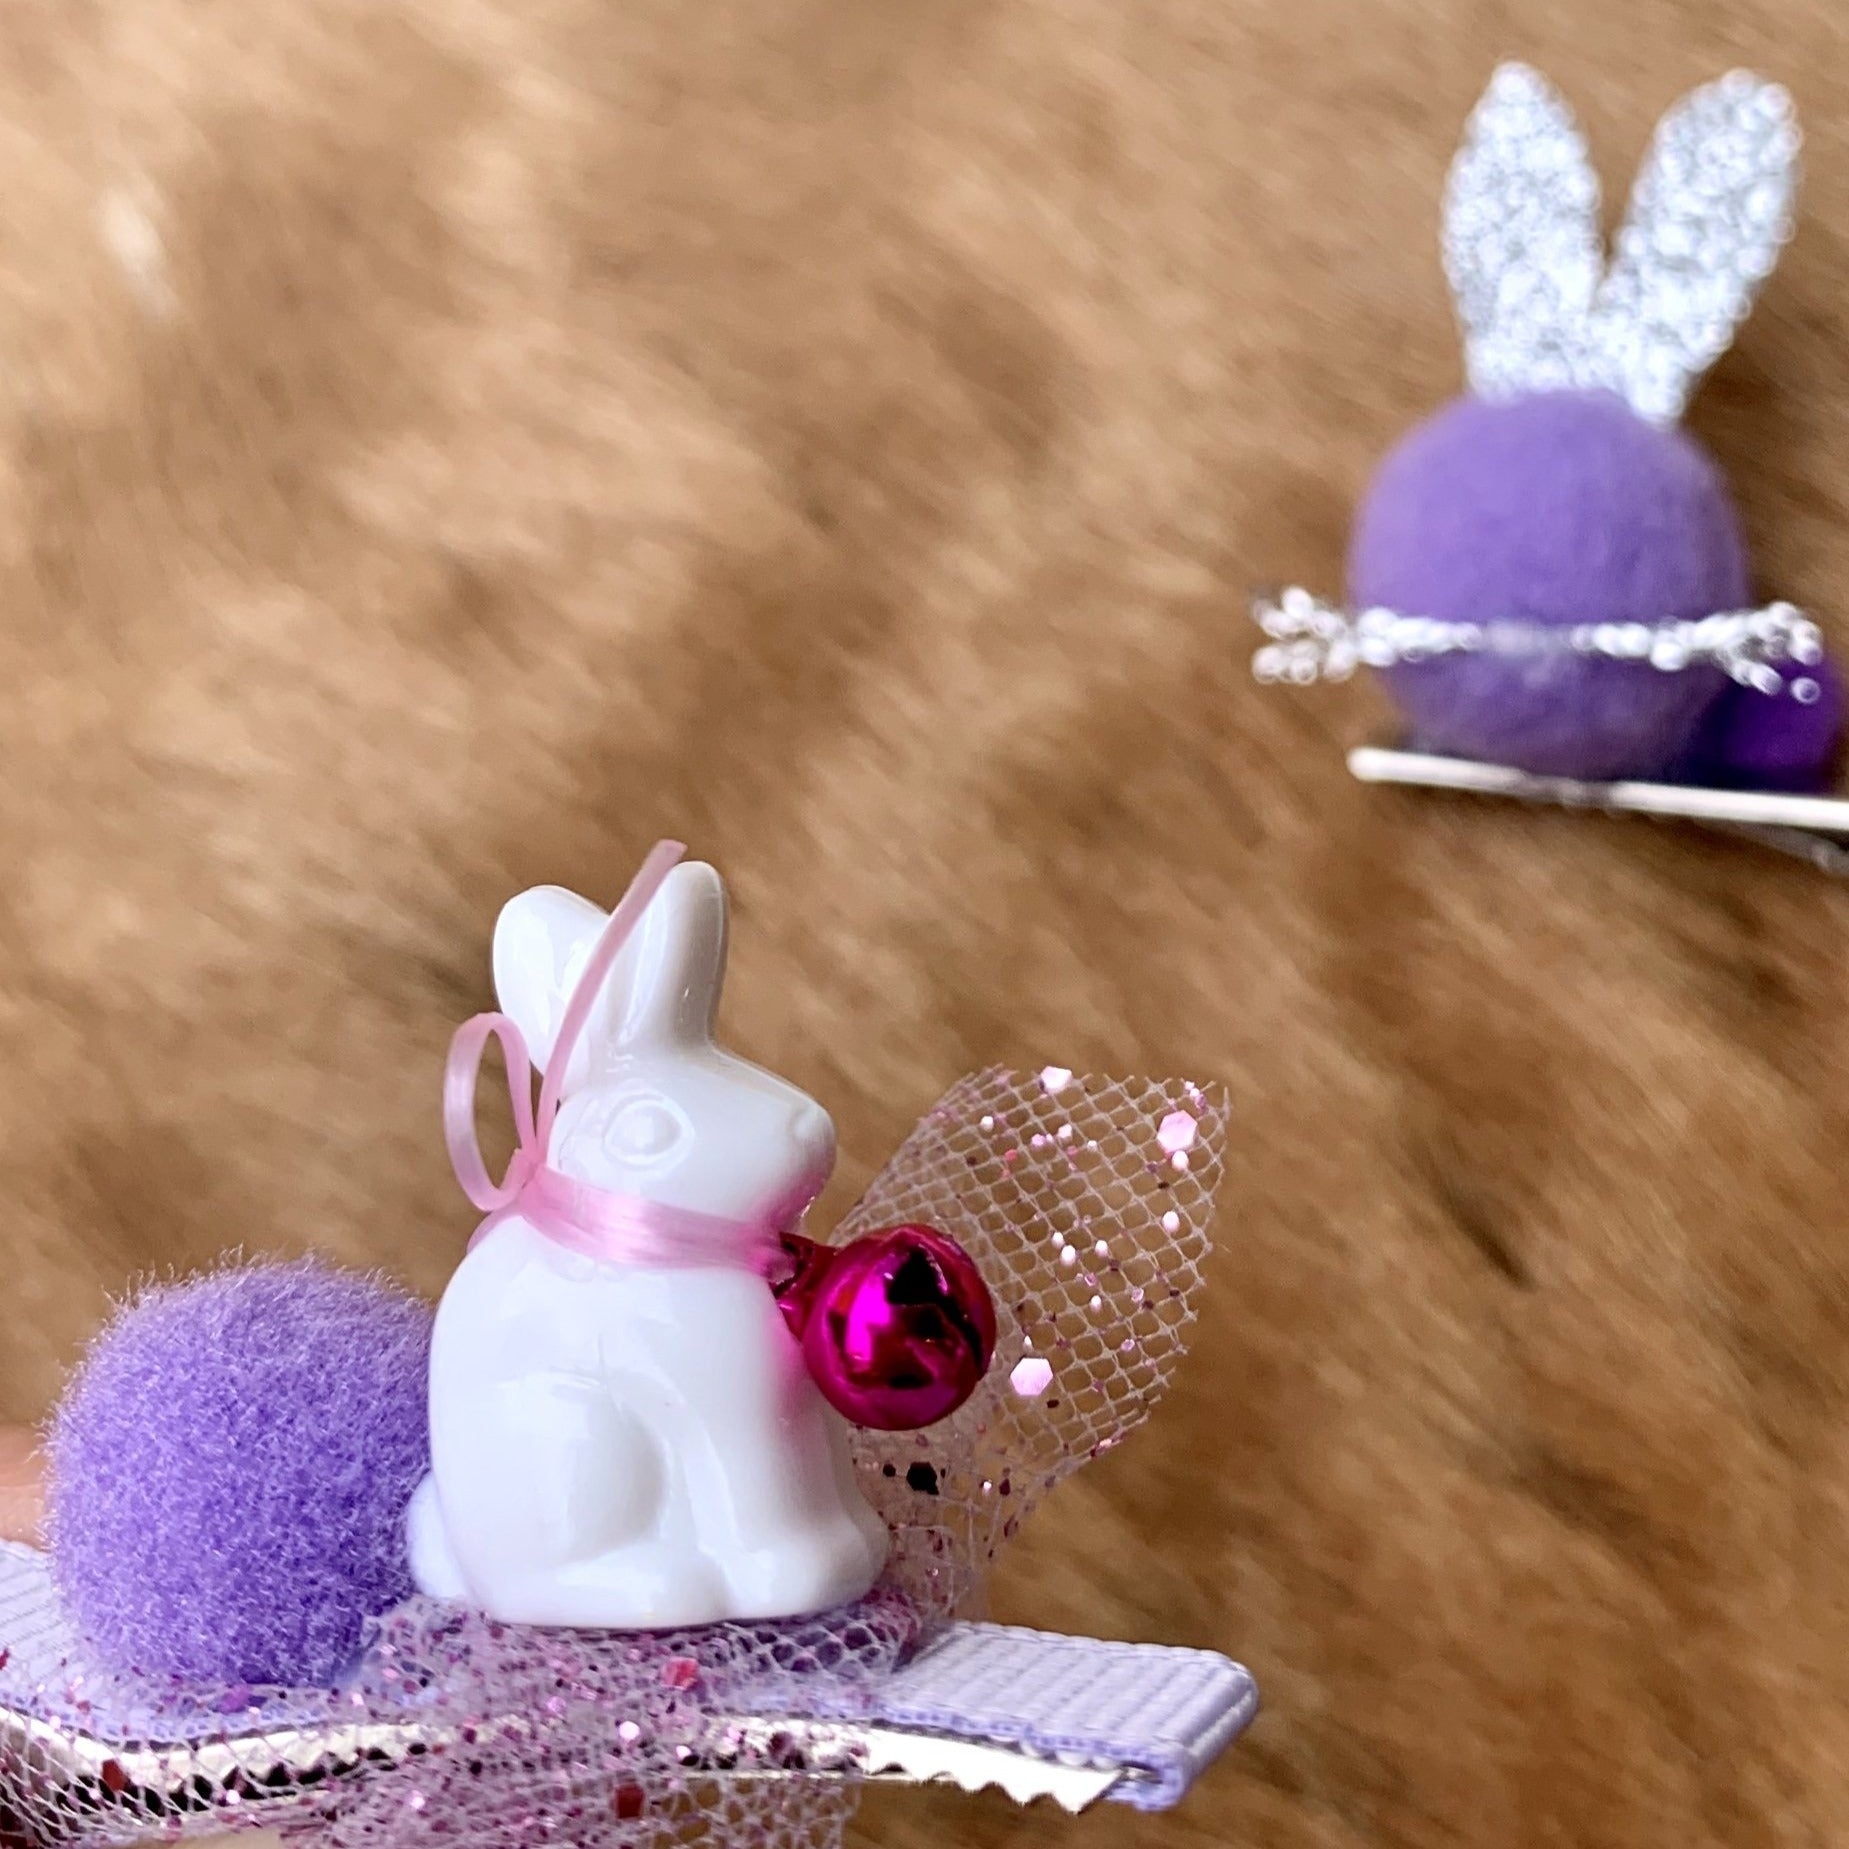 purple 3D rabbit hairclips